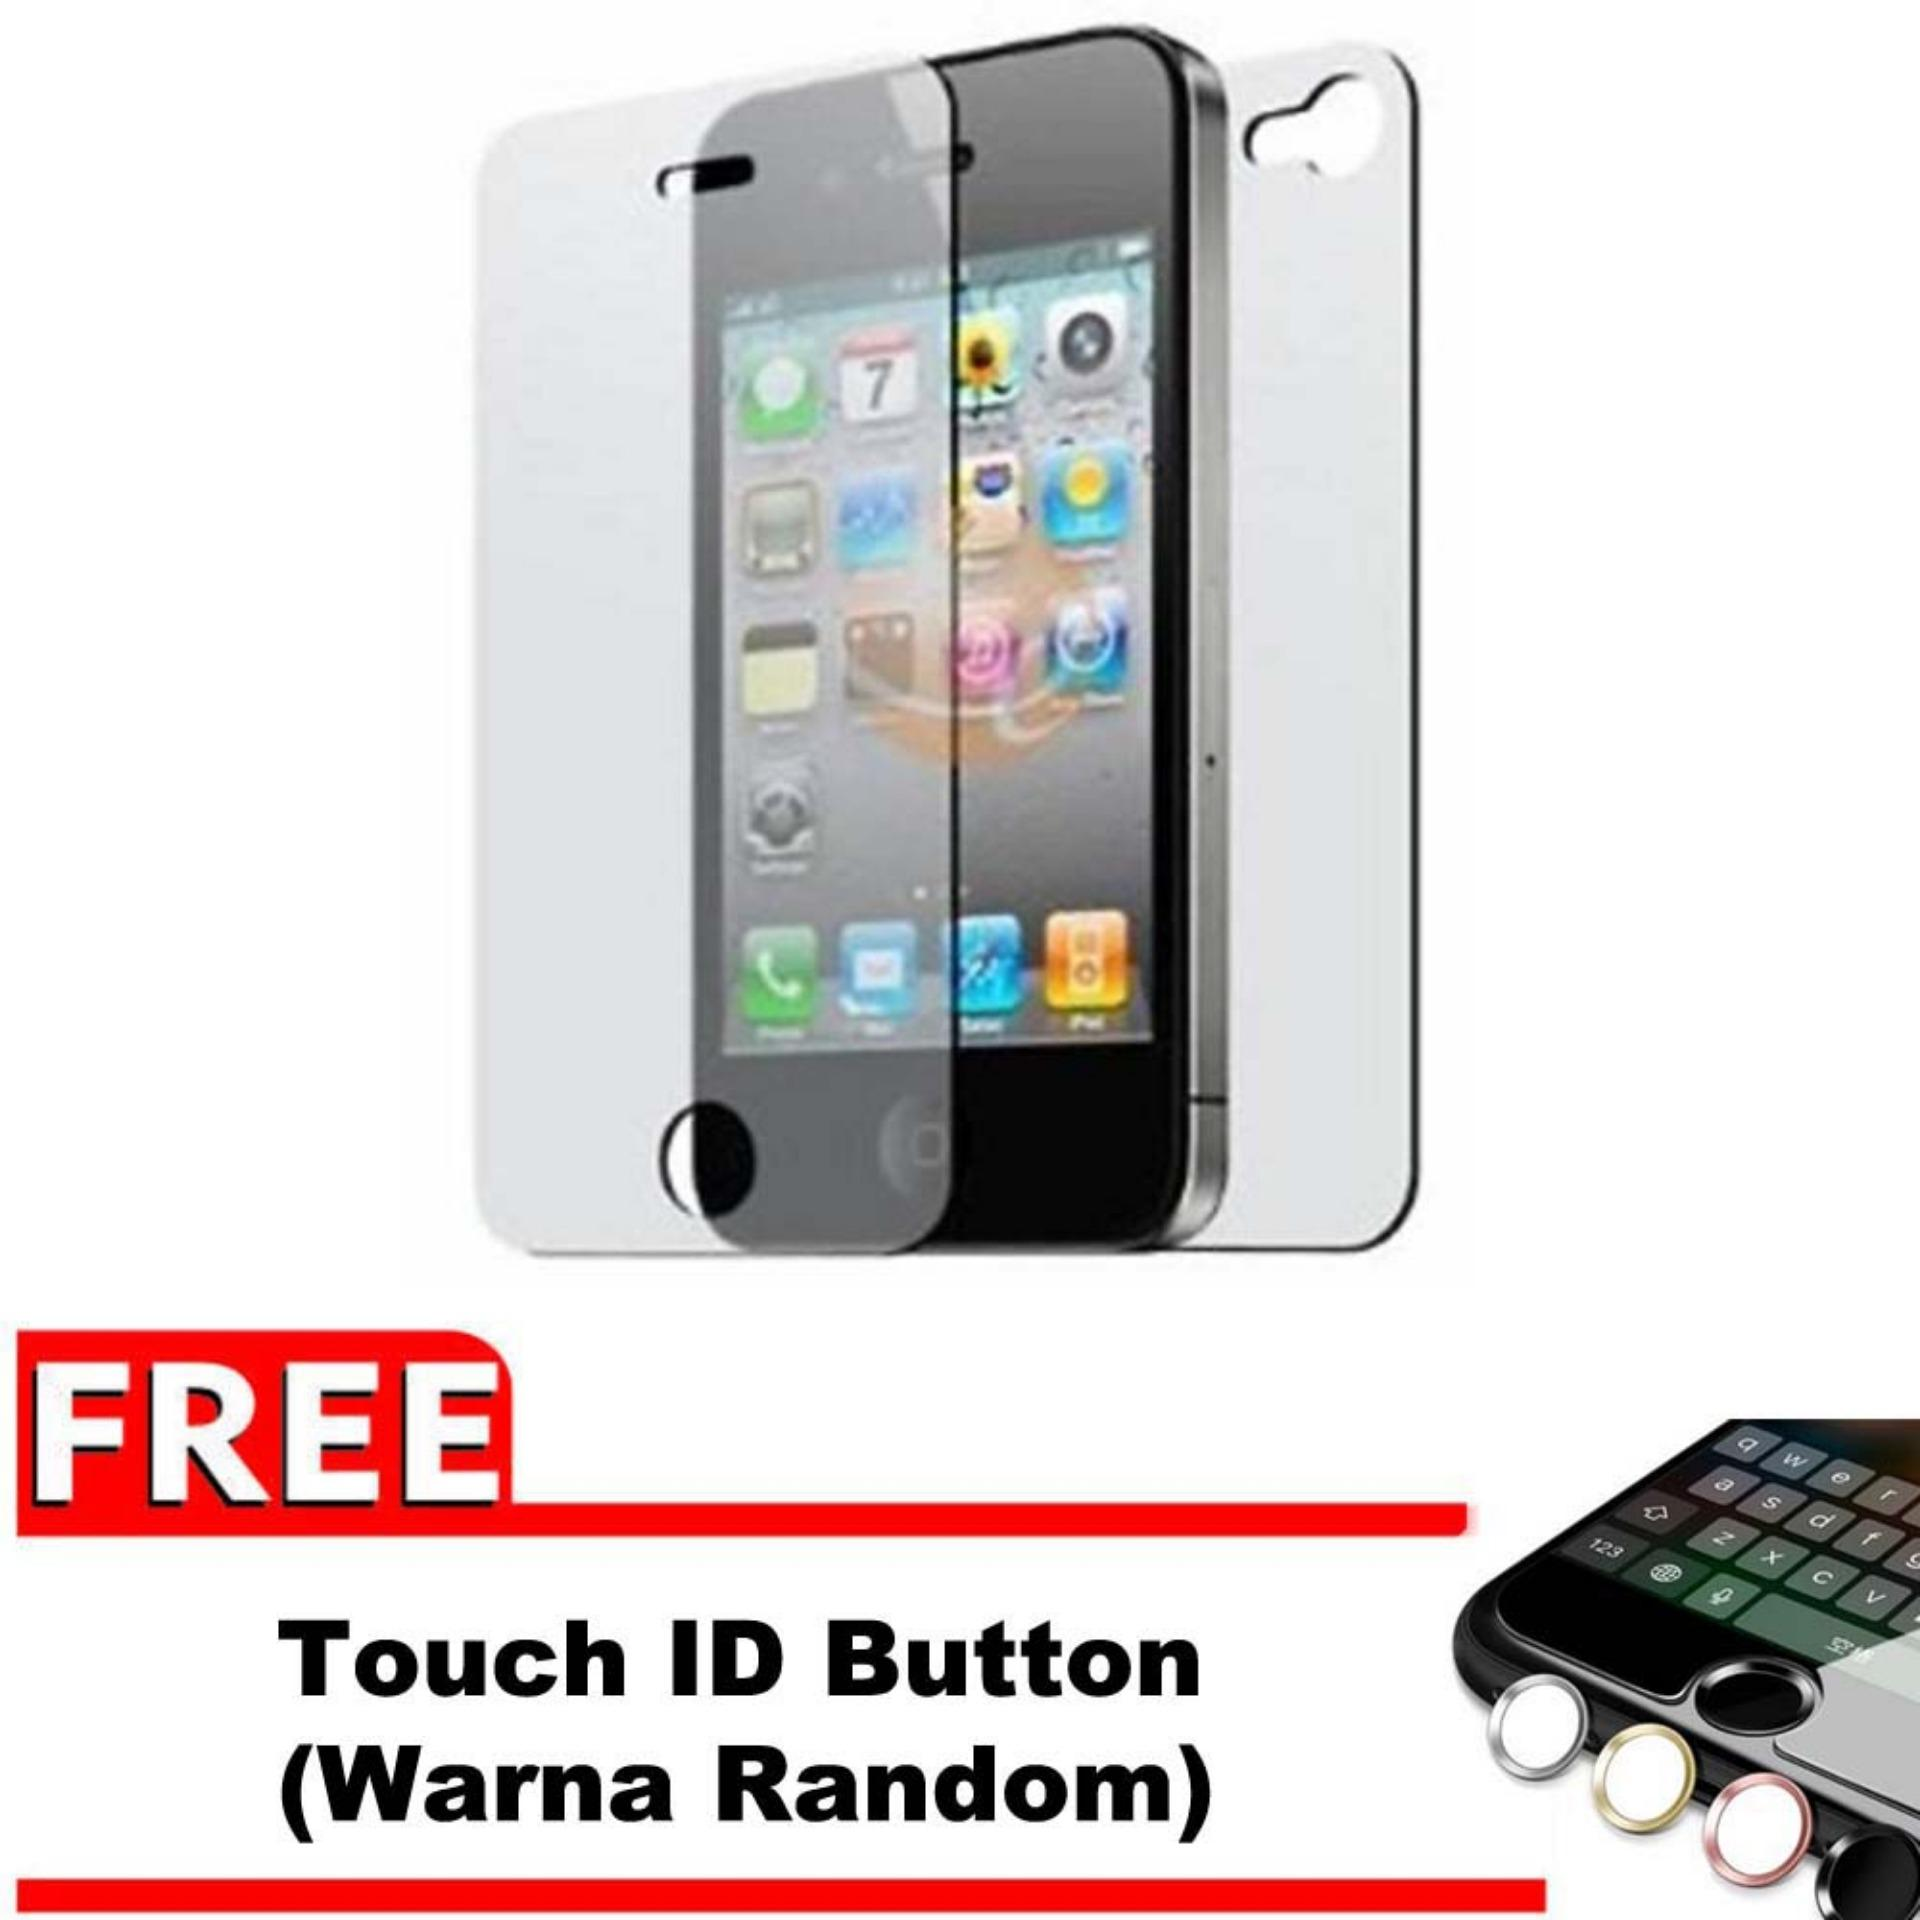 Rp 31.900. Vn Apple iPhone 4 / 4S / 4G Tempered Glass 9H Screen Protector ...